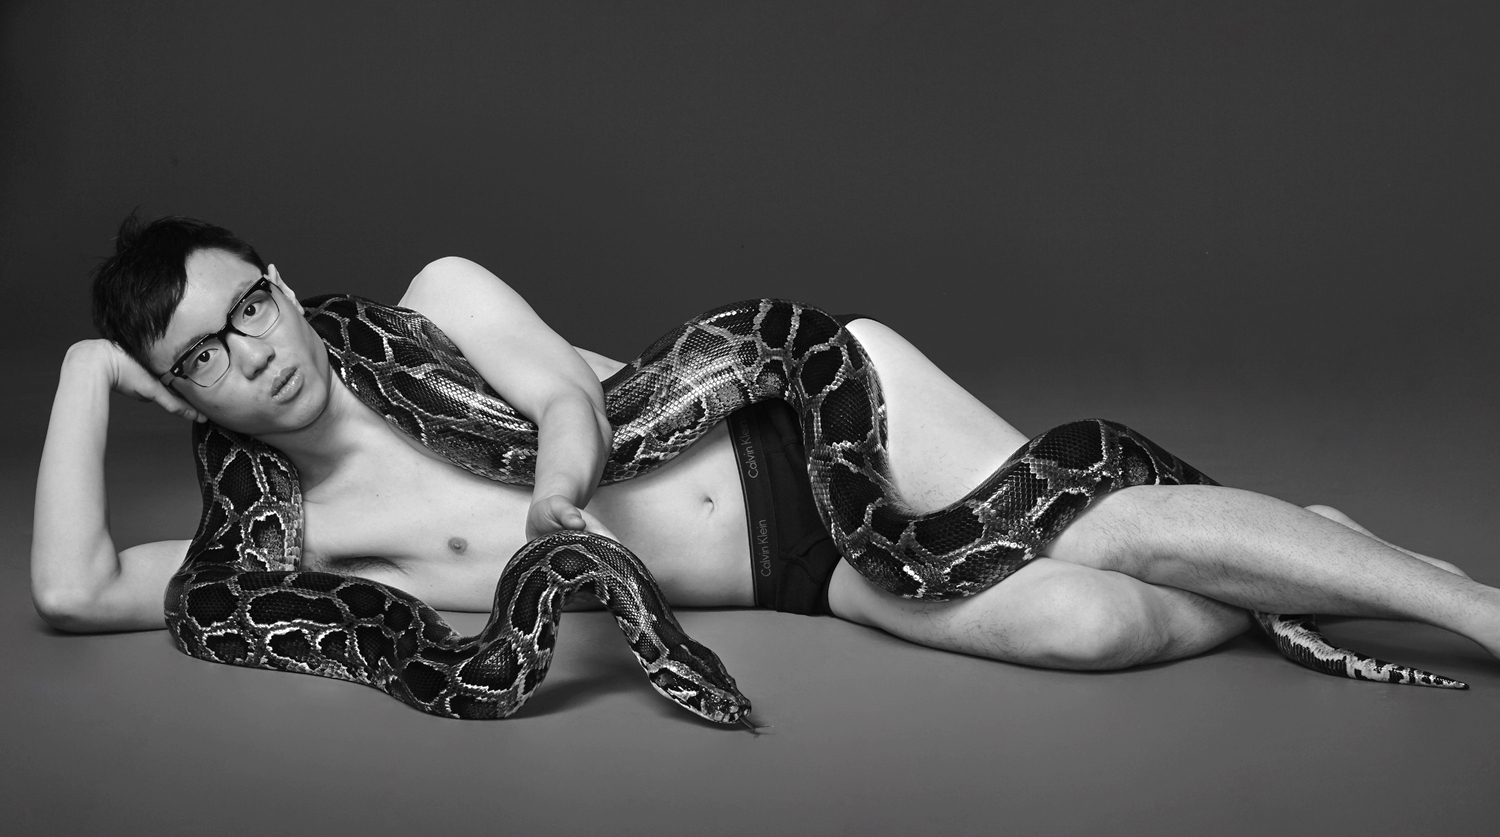 kevin+laying+with+snake+a.jpg